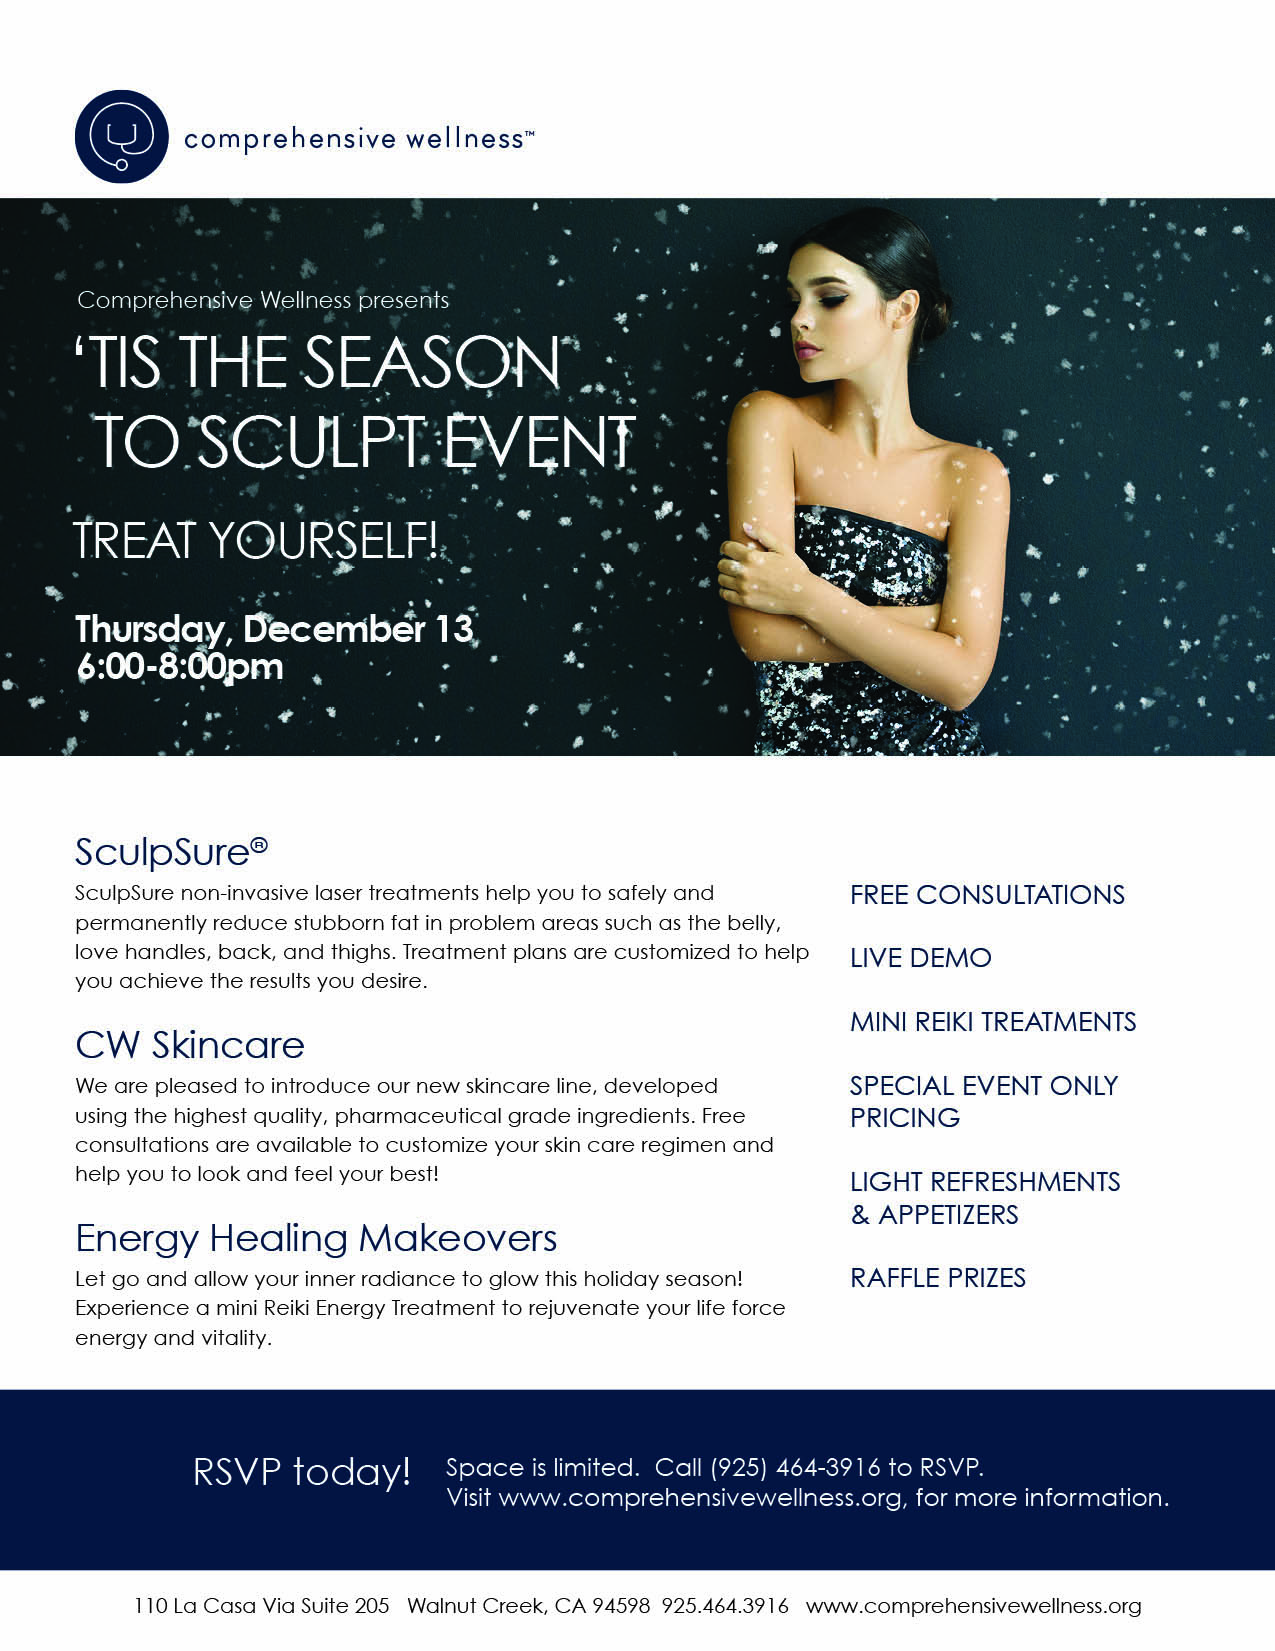 'Tis the Season to Sculpt - SculpSure Holiday Event